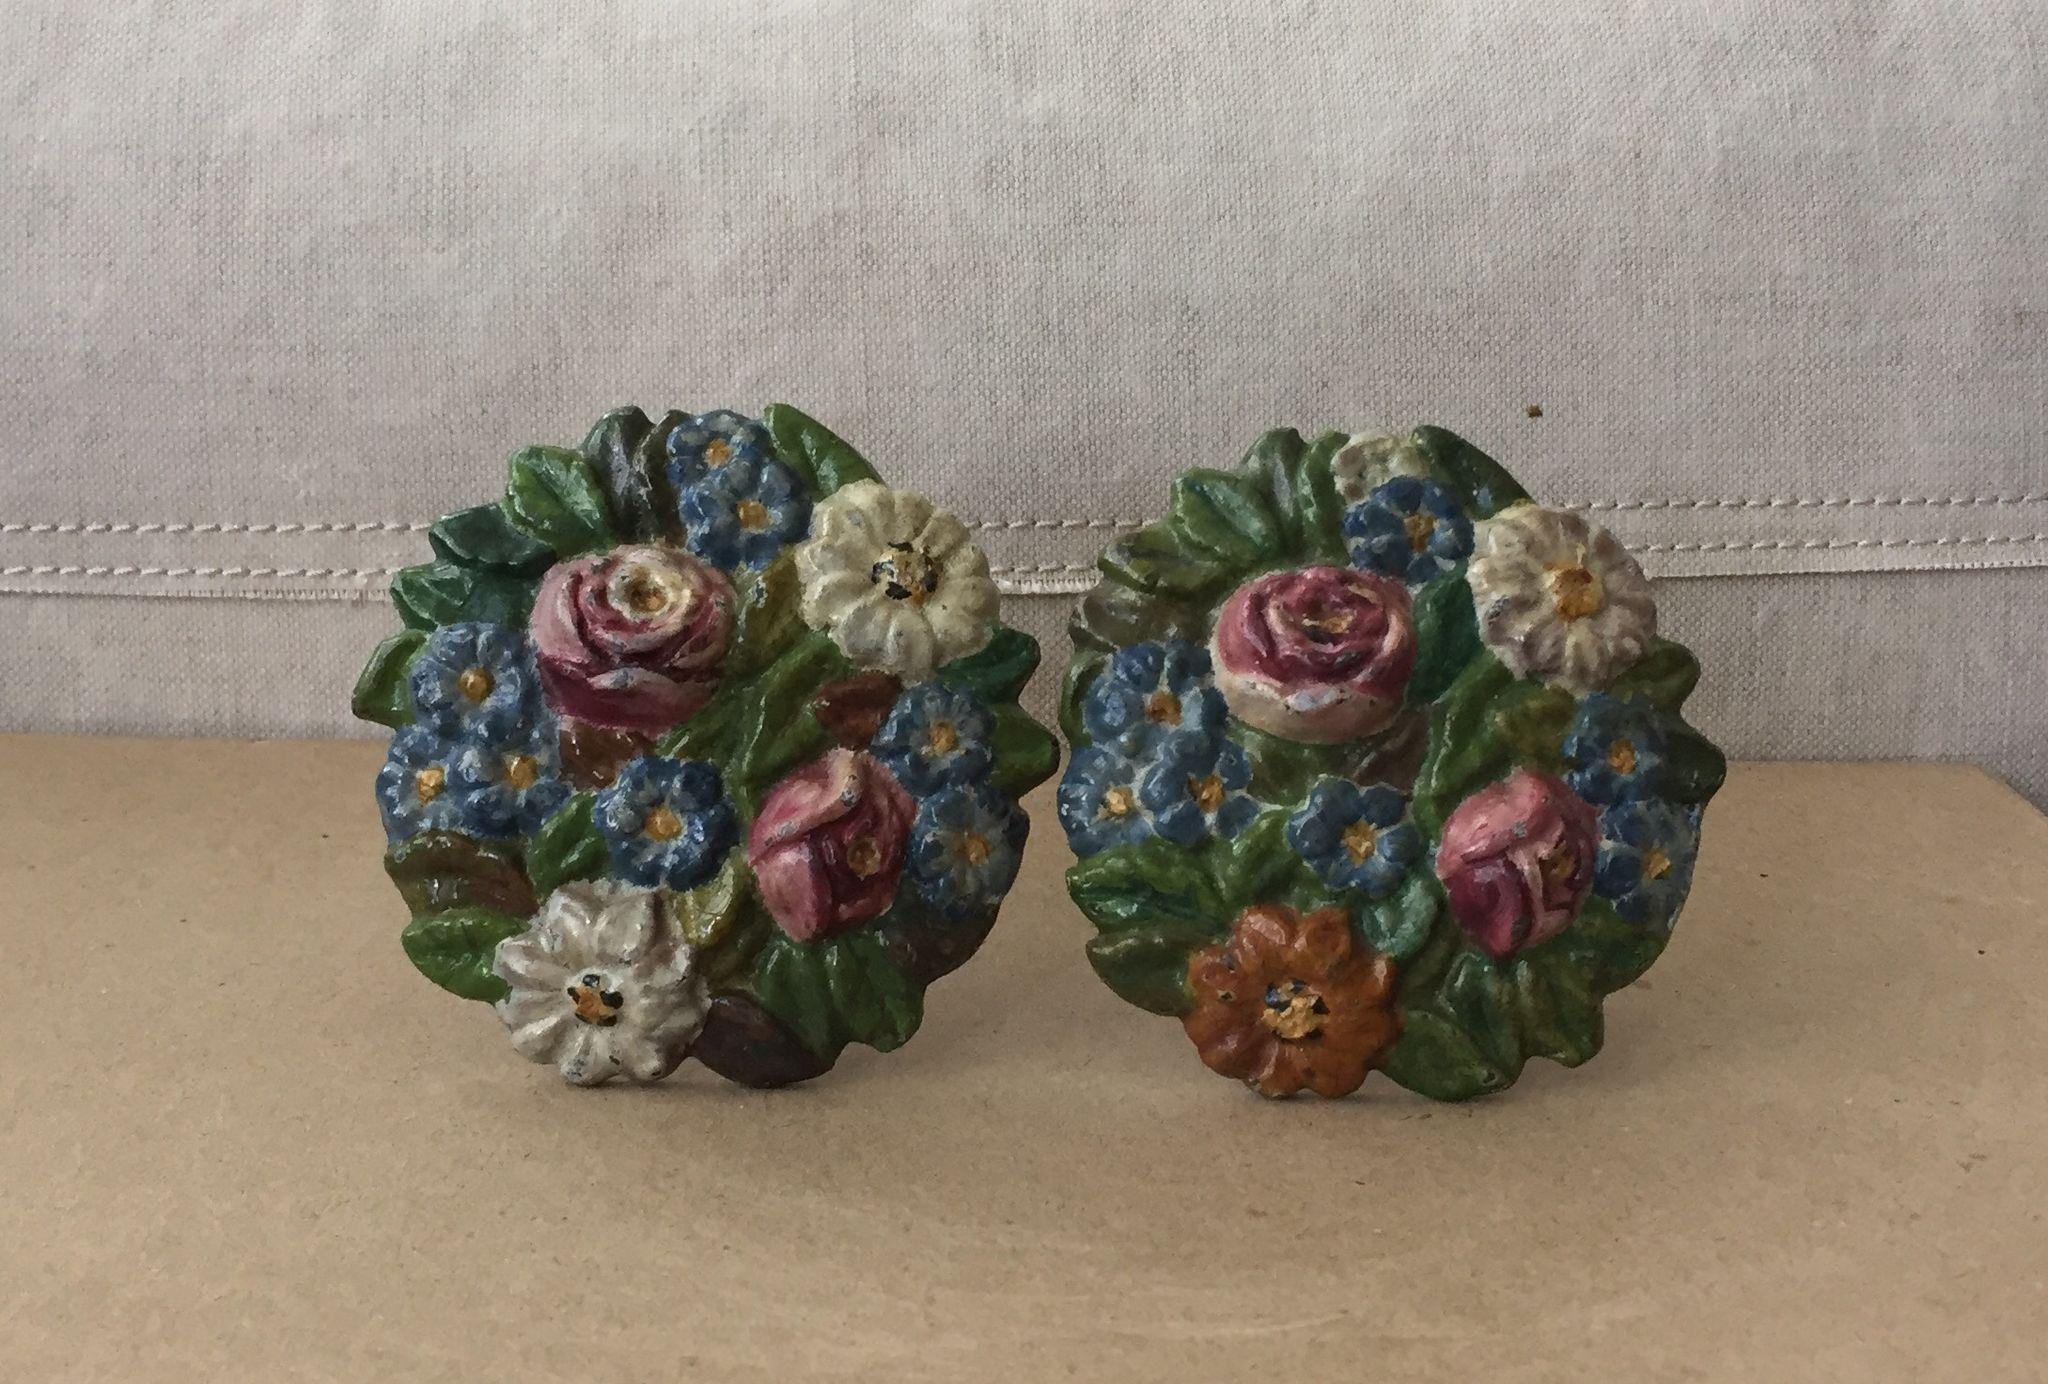 Charming Old Cast Iron Floral Curtain Tiebacks Roses, Daisies, Forget-Me-Nots